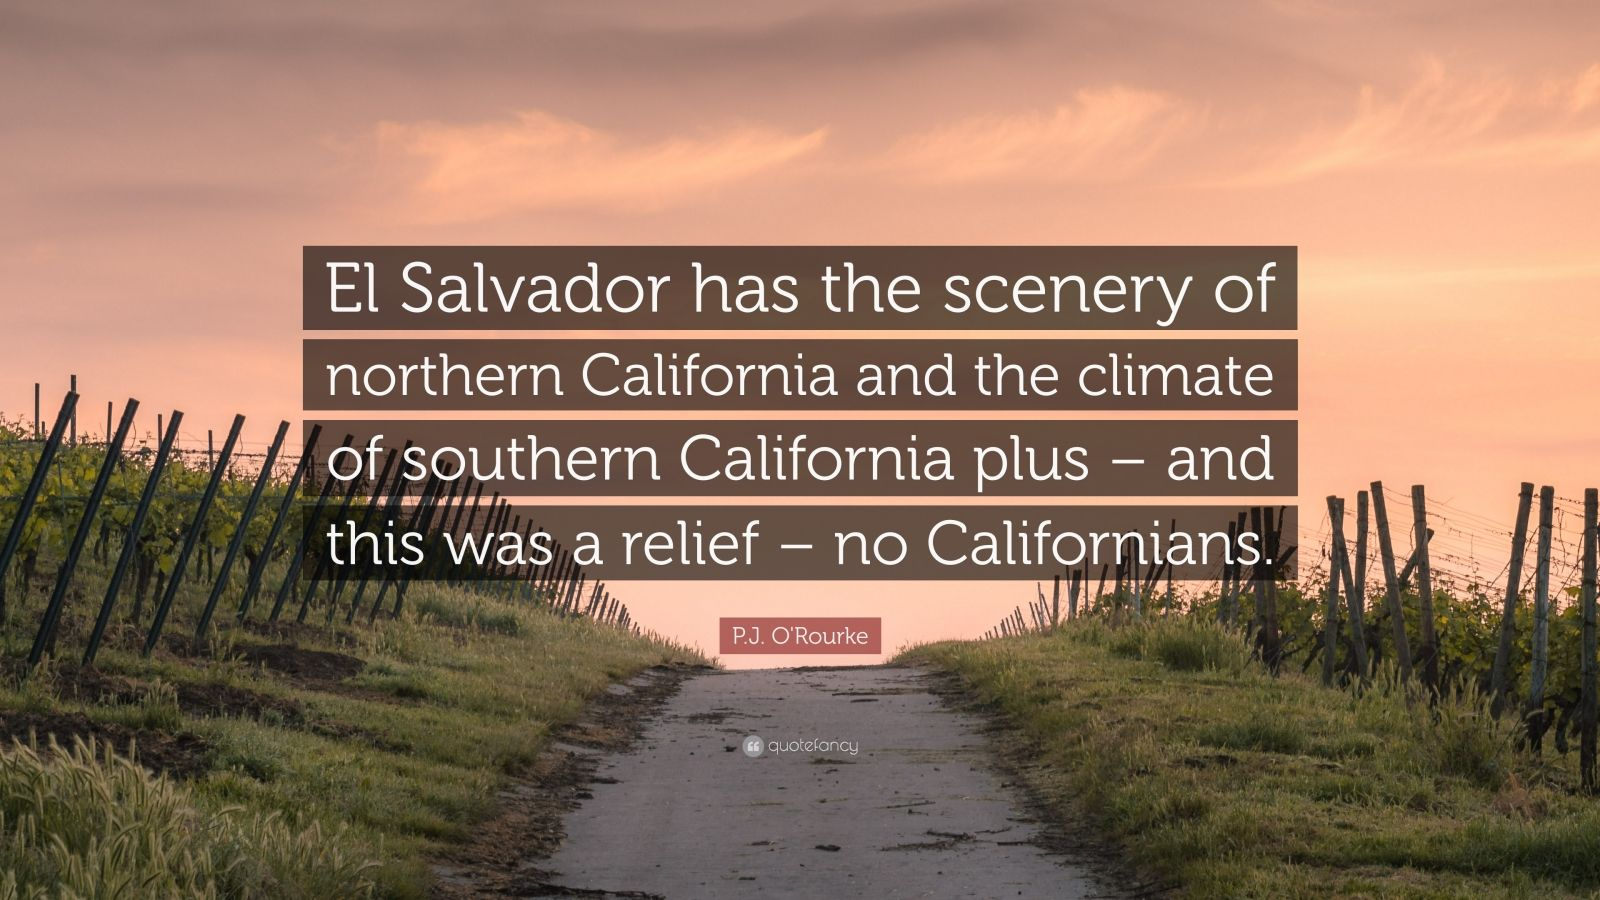 """P.J. O'Rourke Quote: """"El Salvador has the scenery of northern California and the climate of southern California plus – and this was a relief – no Californians."""""""